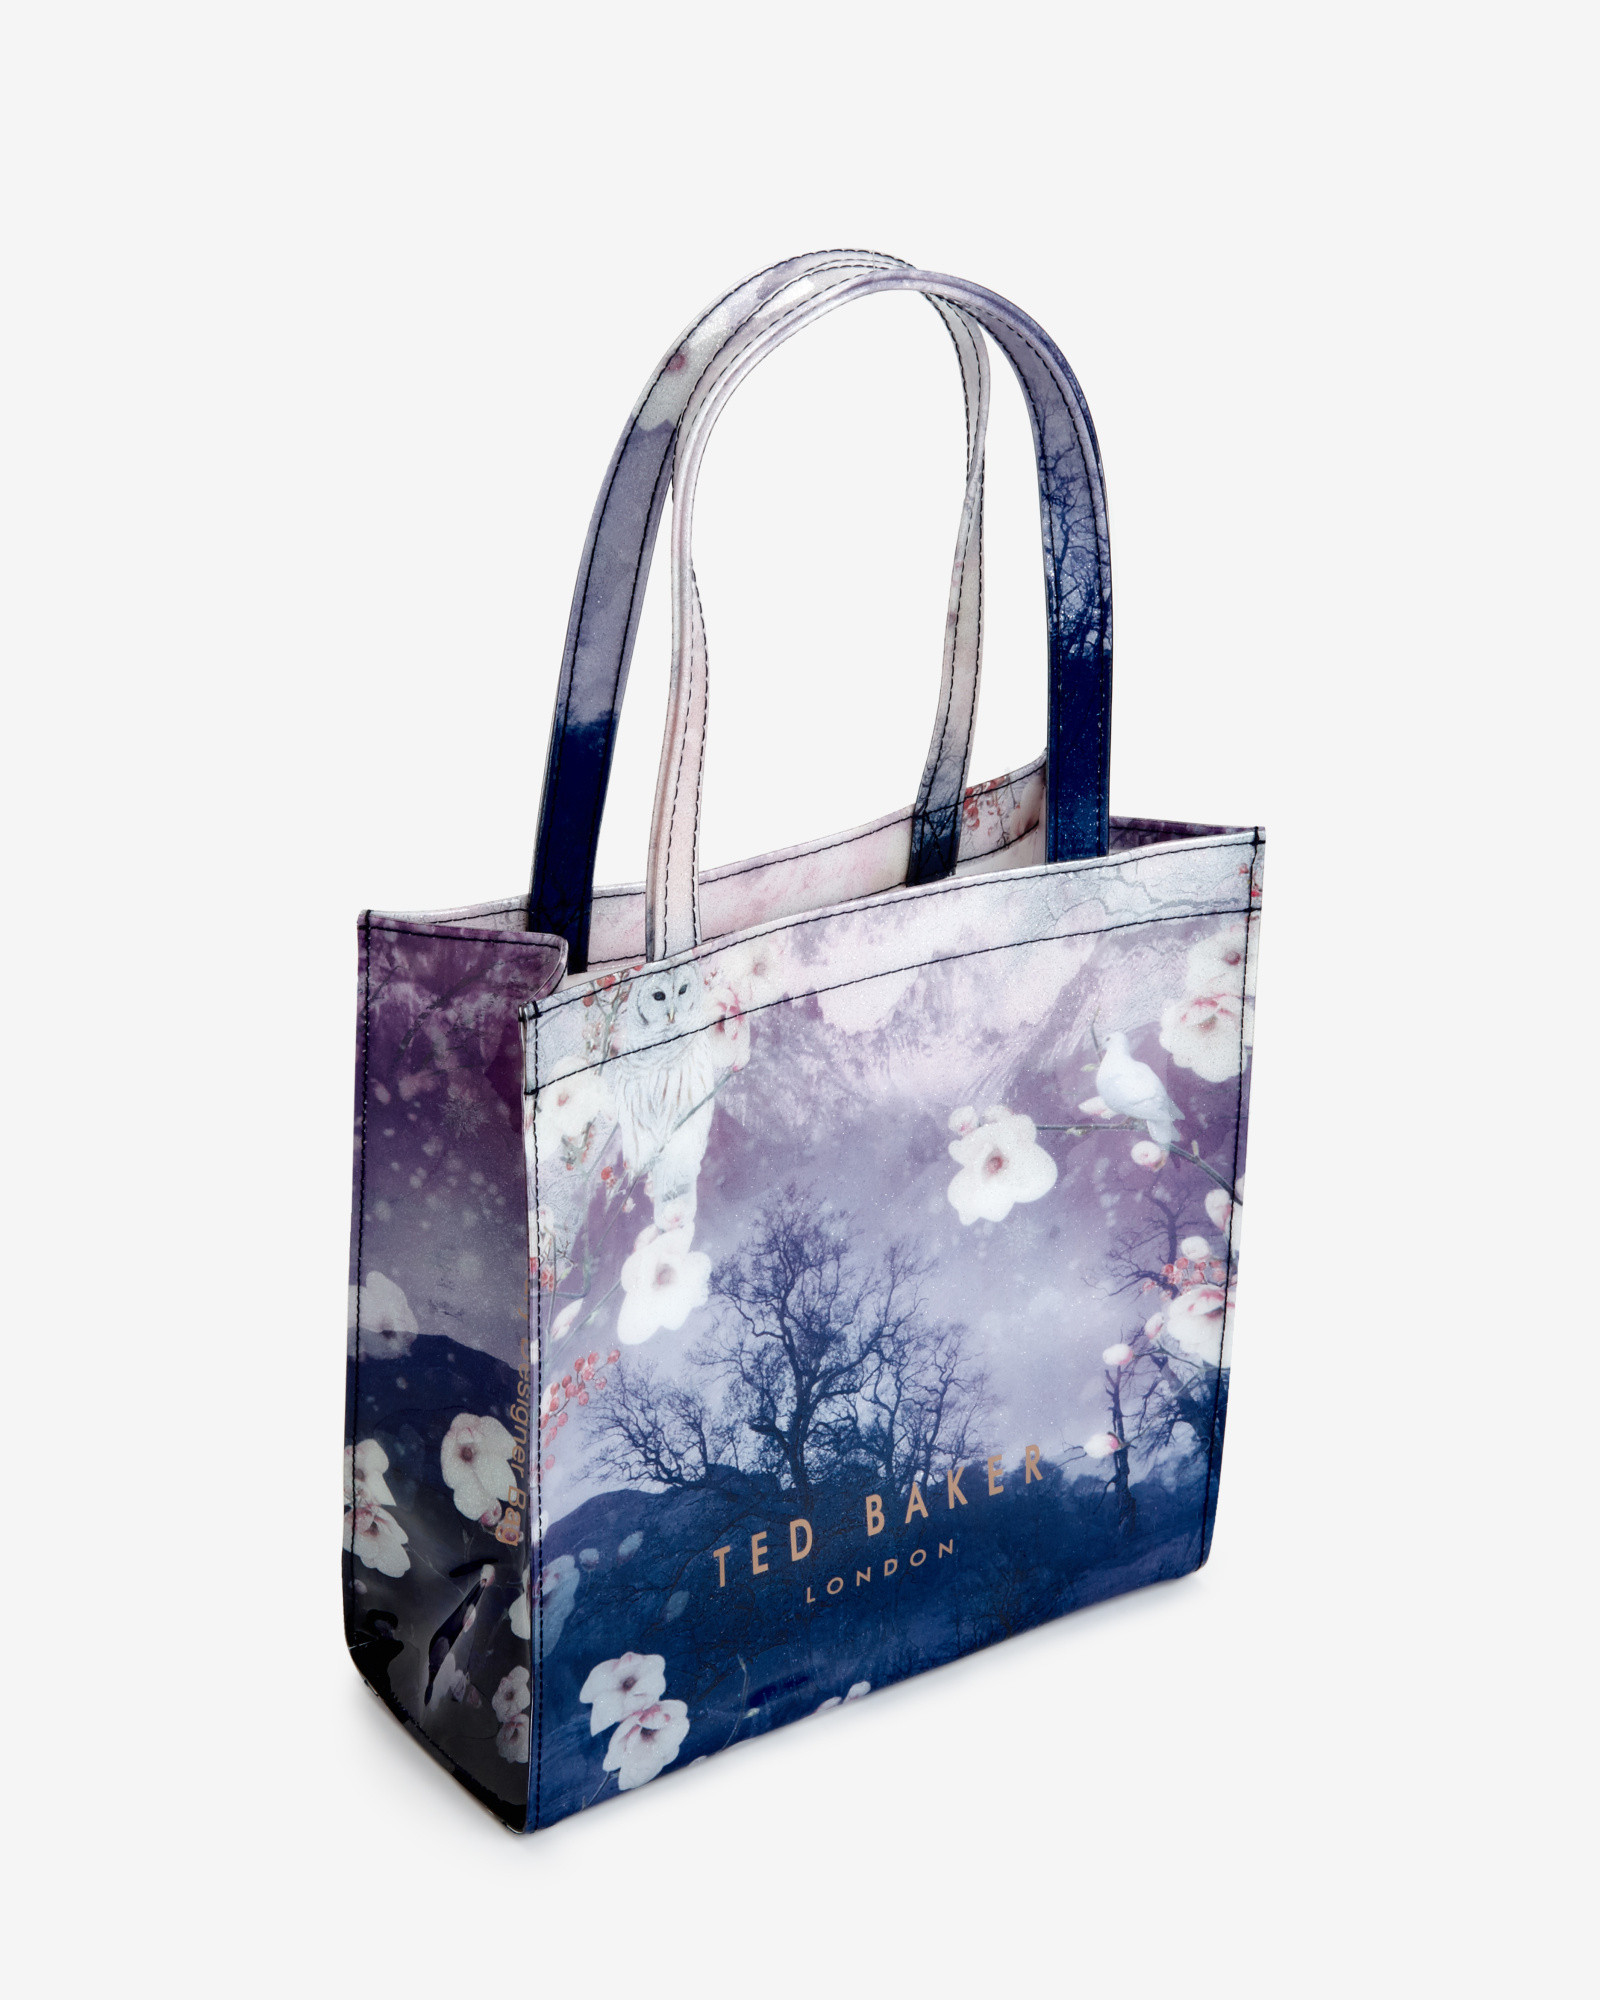 37ecaf93048de Ted Baker Small Misty Mountains Shopper Bag in Blue - Lyst